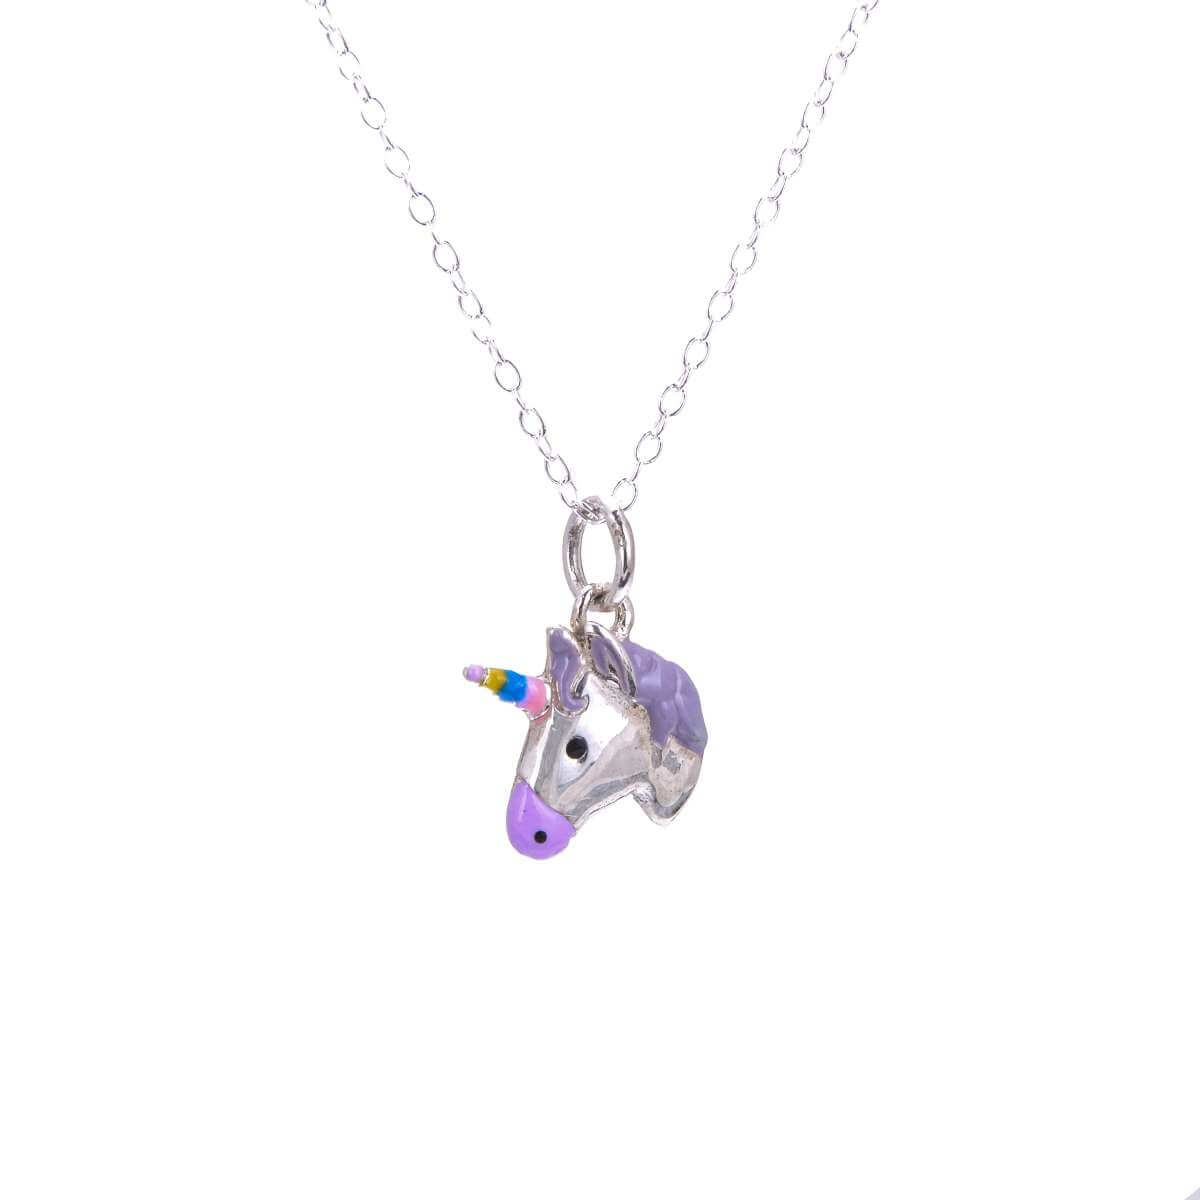 Sterling Silver Unicorn Enamel Necklace - 14 - 32 Inches